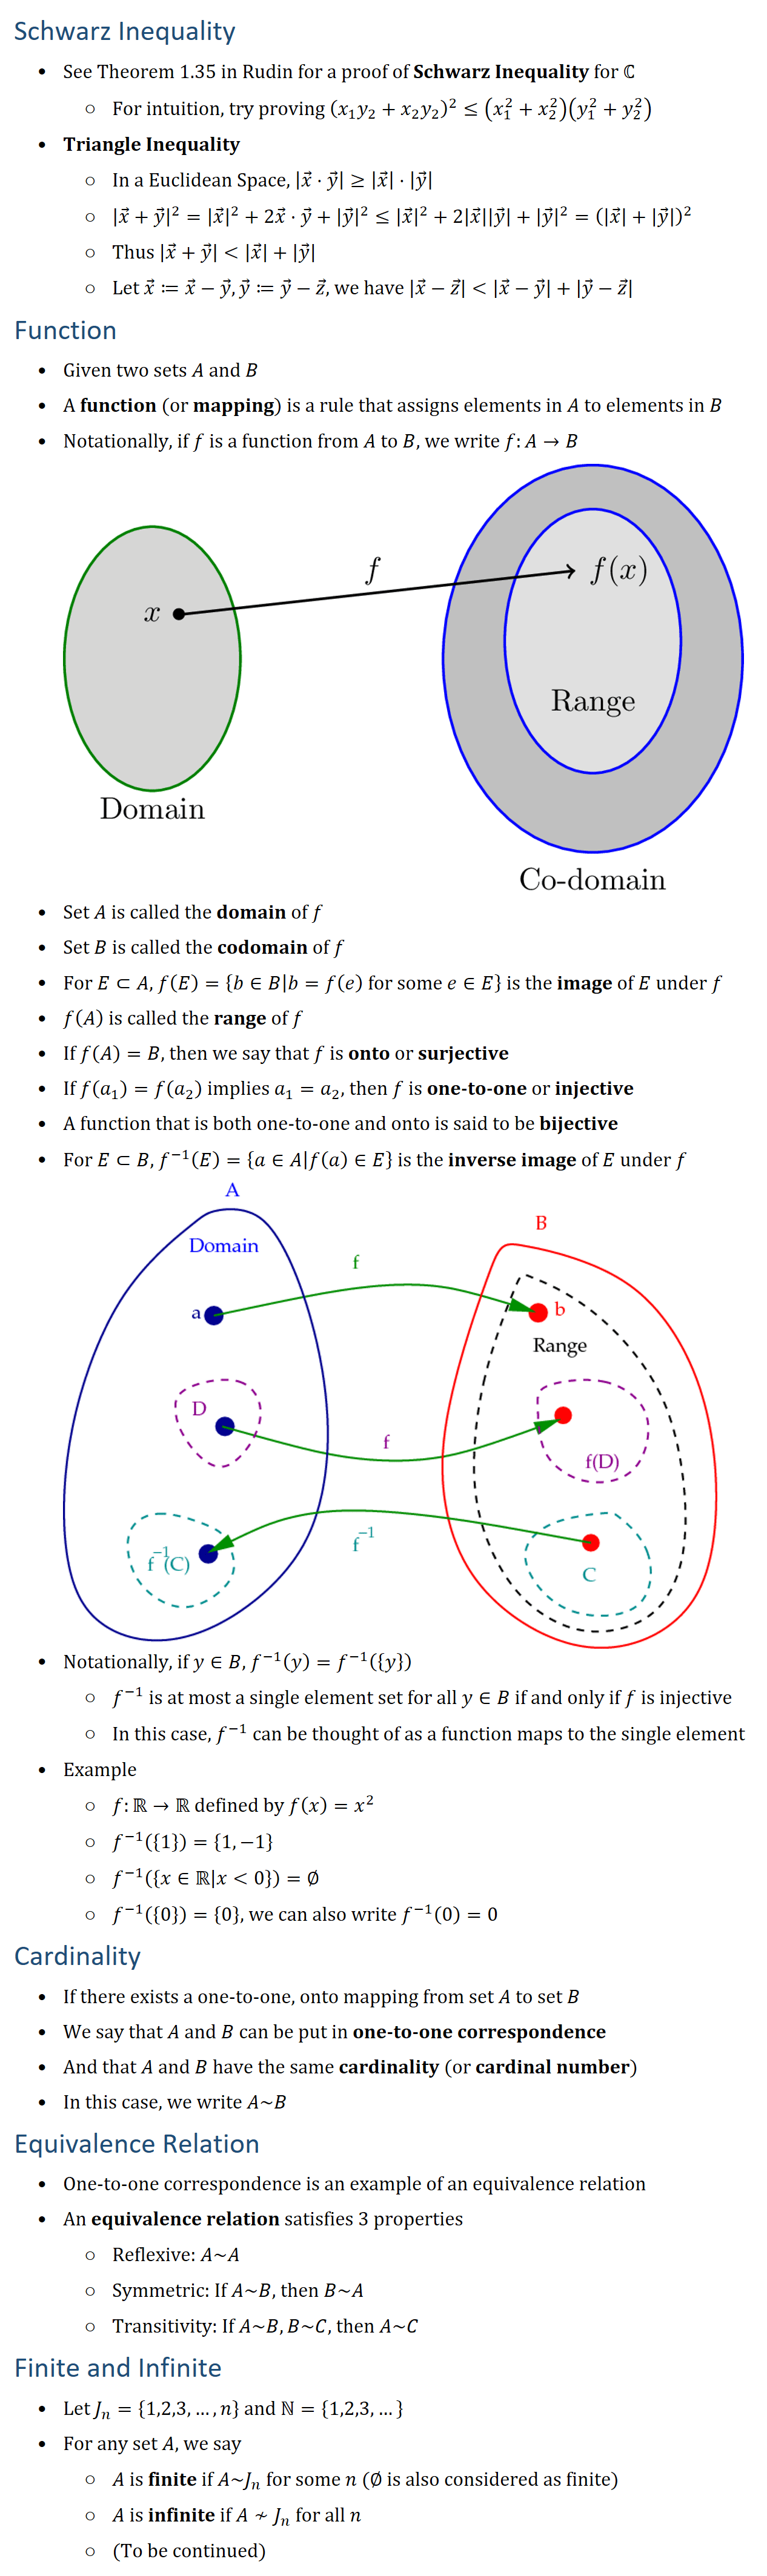 Schwarz Inequality • See Theorem 1.35 in Rudin for a proof of Schwarz Inequality for ℂ ○ For intuition, try proving (x_1 y_2+x_2 y_2 )^2≤(x_1^2+x_2^2 )(y_1^2+y_2^2 ) • Triangle Inequality ○ In a Euclidean Space,  x ⃗⋅y ⃗  ≥ x ⃗  ⋅ y ⃗   ○  x ⃗+y ⃗^2  = x ⃗  ^2+2x ⃗⋅y ⃗+ y ⃗  ^2≤ x ⃗  ^2+2 x ⃗   y ⃗  + y ⃗  ^2=( x ⃗  + y ⃗  )^2 ○ Thus  x ⃗+y ⃗   x ⃗  + y ⃗   ○ Let x ⃗≔x ⃗−y ⃗, y ⃗≔y ⃗−z ⃗, we have  x ⃗−z ⃗   x ⃗−y ⃗  + y ⃗−z ⃗   Function • Given two sets A and B • A function (or mapping) is a rule that assigns elements in A to elements in B • Notationally, if f is a function from A to B, we write f:A→B • Set A is called the domain of f • Set B is called the codomain of f • For E⊂A, f(E)={b∈B│b=f(e) for some e∈E} is the image of E under f • f(A) is called the range of f • If f(A)=B, then we say that f is onto or surjective • If f(a_1 )=f(a_2 ) implies a_1=a_2, then f is one-to-one or injective • A function that is both one-to-one and onto is said to be bijective • For E⊂B, f^(−1) (E)={a∈A│f(a)∈E} is the inverse image of E under f • Notationally, if y∈B, f^(−1) (y)=f^(−1) ({y}) ○ f^(−1) is at most a single element set for all y∈B if and only if f is injective ○ In this case, f^(−1) can be thought of as a function maps to the single element • Example ○ f:R→R defined by f(x)=x^2 ○ f^(−1) ({1})={1,−1} ○ f^(−1) ({x∈Rx0})=∅ ○ f^(−1) ({0})={0}, we can also write f^(−1) (0)=0 Cardinality • If there exists a one-to-one, onto mapping from set A to set B • We say that A and B can be put in one-to-one correspondence • And that A and B have the same cardinality (or cardinal number) • In this case, we write A~B Equivalence Relation • One-to-one correspondence is an example of an equivalence relation • An equivalence relation satisfies 3 properties ○ Reflexive: A~A ○ Symmetric: If A~B, then B~A ○ Transitivity: If A~B, B~C, then A~C Finite and Countable • Let J_n={1,2,3,…,n} and N={1,2,3,…} • For any set A, we say ○ A is finite if A~J_n for some n (∅~J_0 so ∅ is finite) ○ A is infini